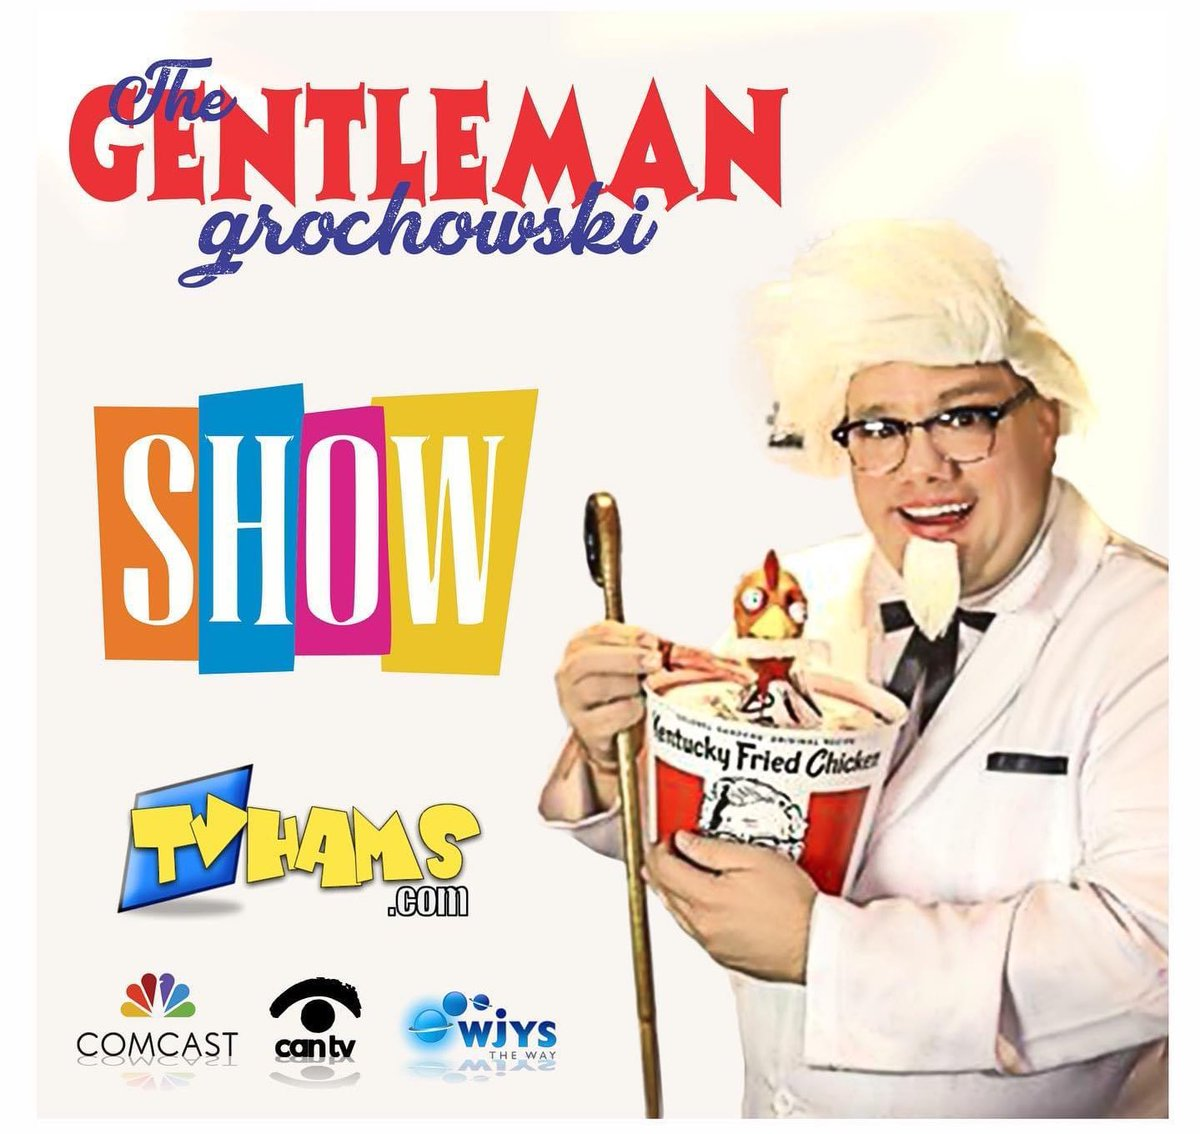 Attention everyone! You may not Win The Powerball or Mega Millions! But this Saturday on WJYS, you can still be entertained watching The Gentleman Grochowski Show! @TVHAMS_TGGS @partee_wesley @comcast @SecondCityTC #silly #thursdaymorning https://t.co/n2zc57ueHz